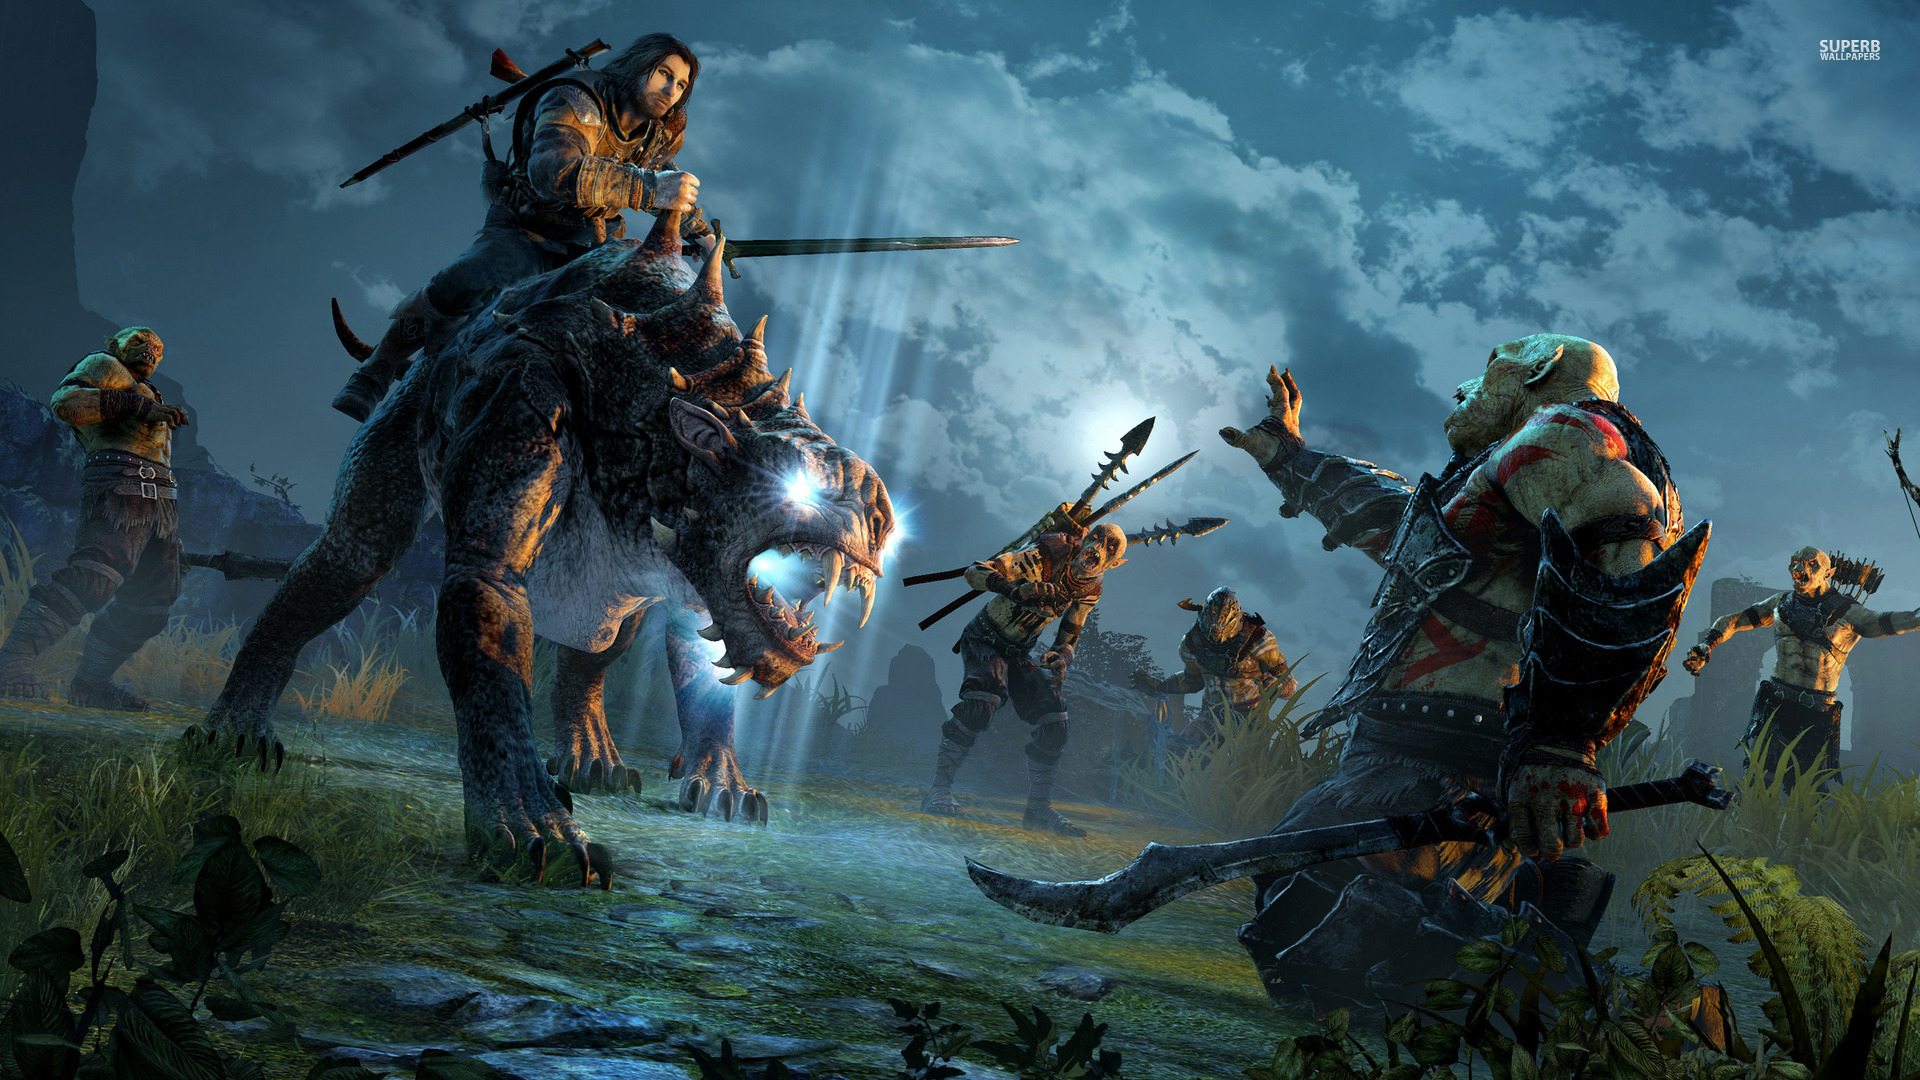 Free Download Shadow Of Mordor Wallpaper Wallpaper 1920x1080 For